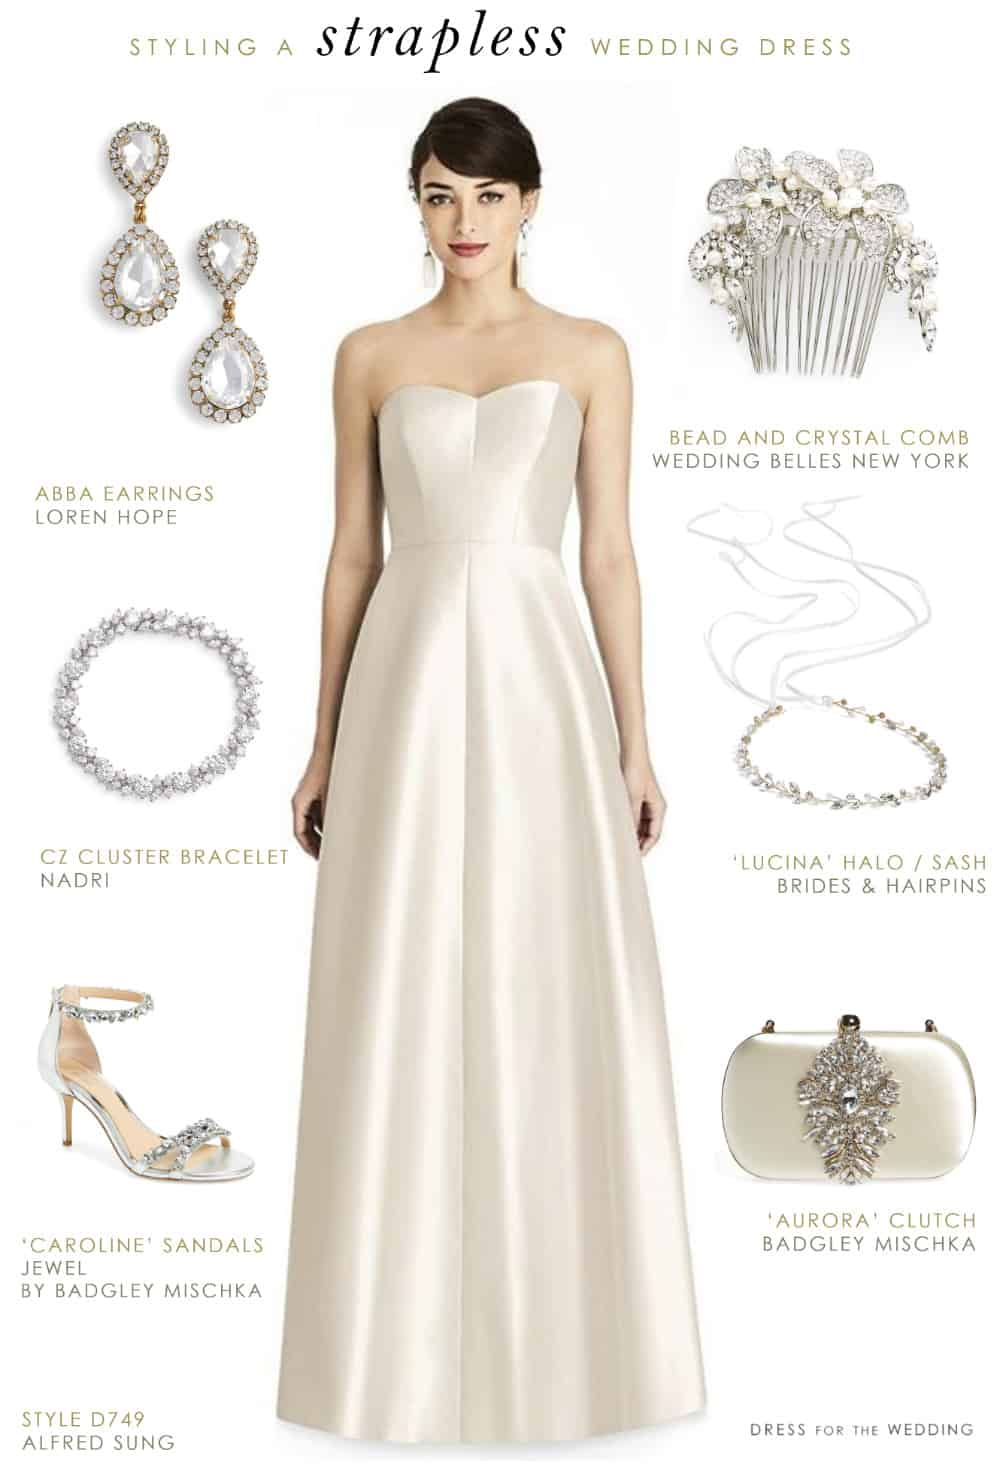 37d14bcfe24 How To Accessorize a Strapless Wedding Dress